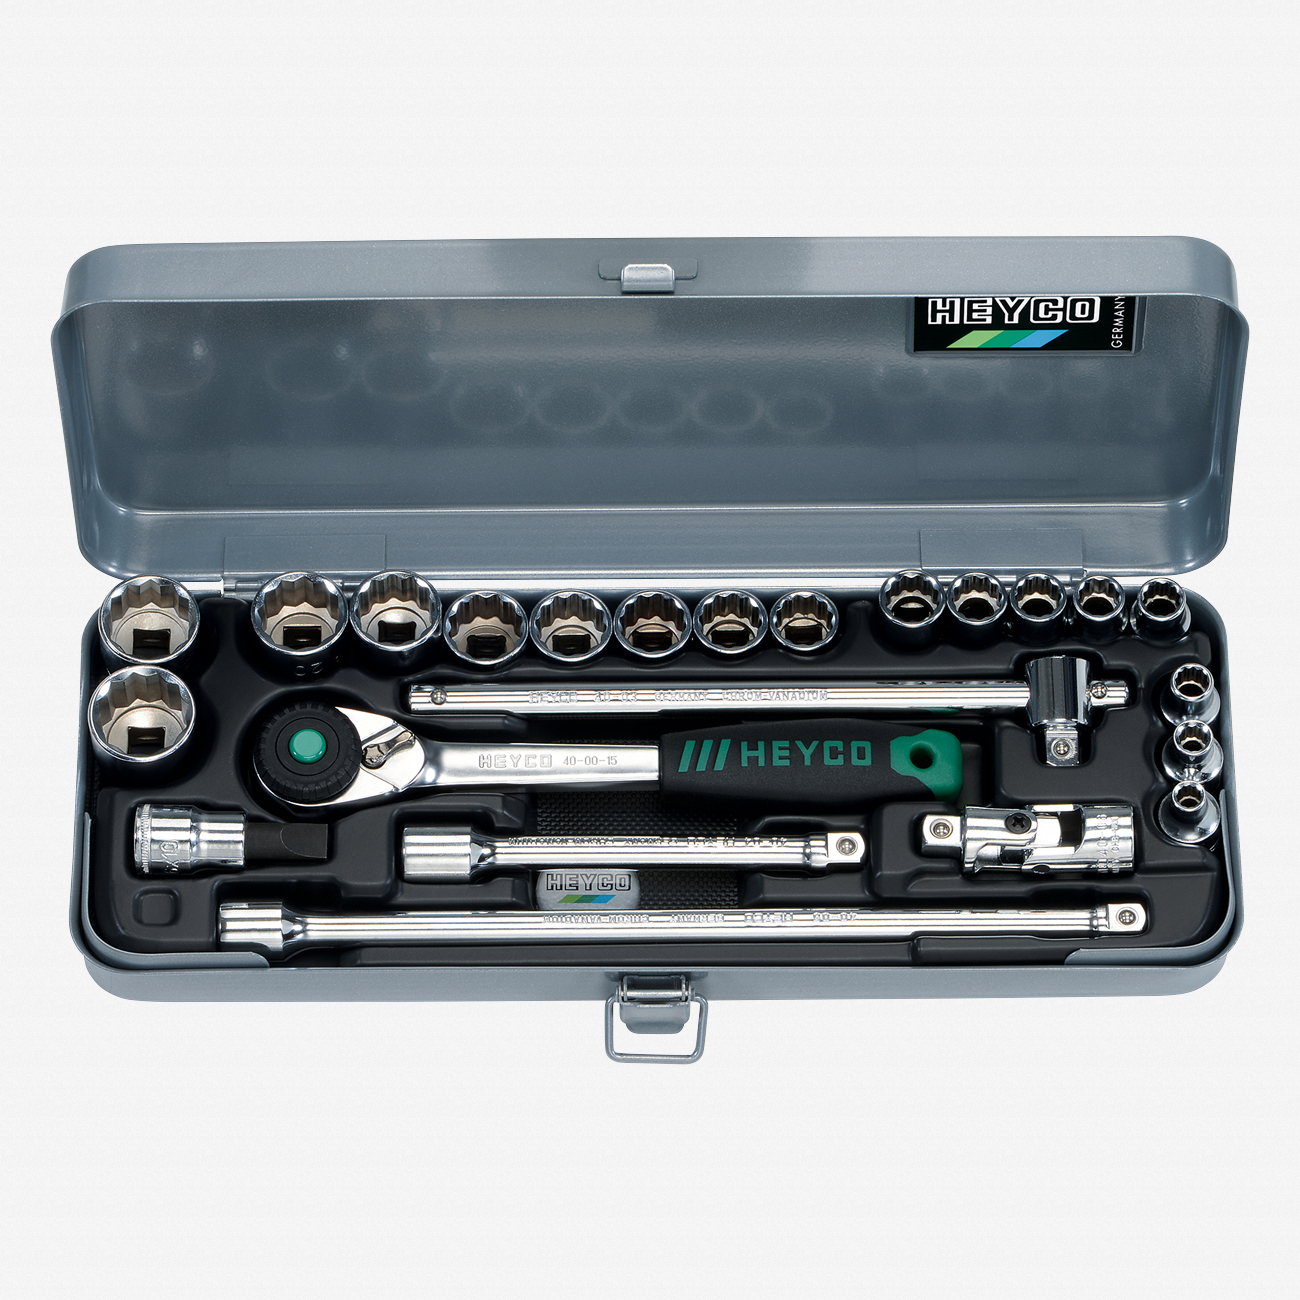 "Heyco 0410010 Metric 12 Point 3/8"" Drive Socket Set with Ratchet, 23 Pieces - KC Tool"